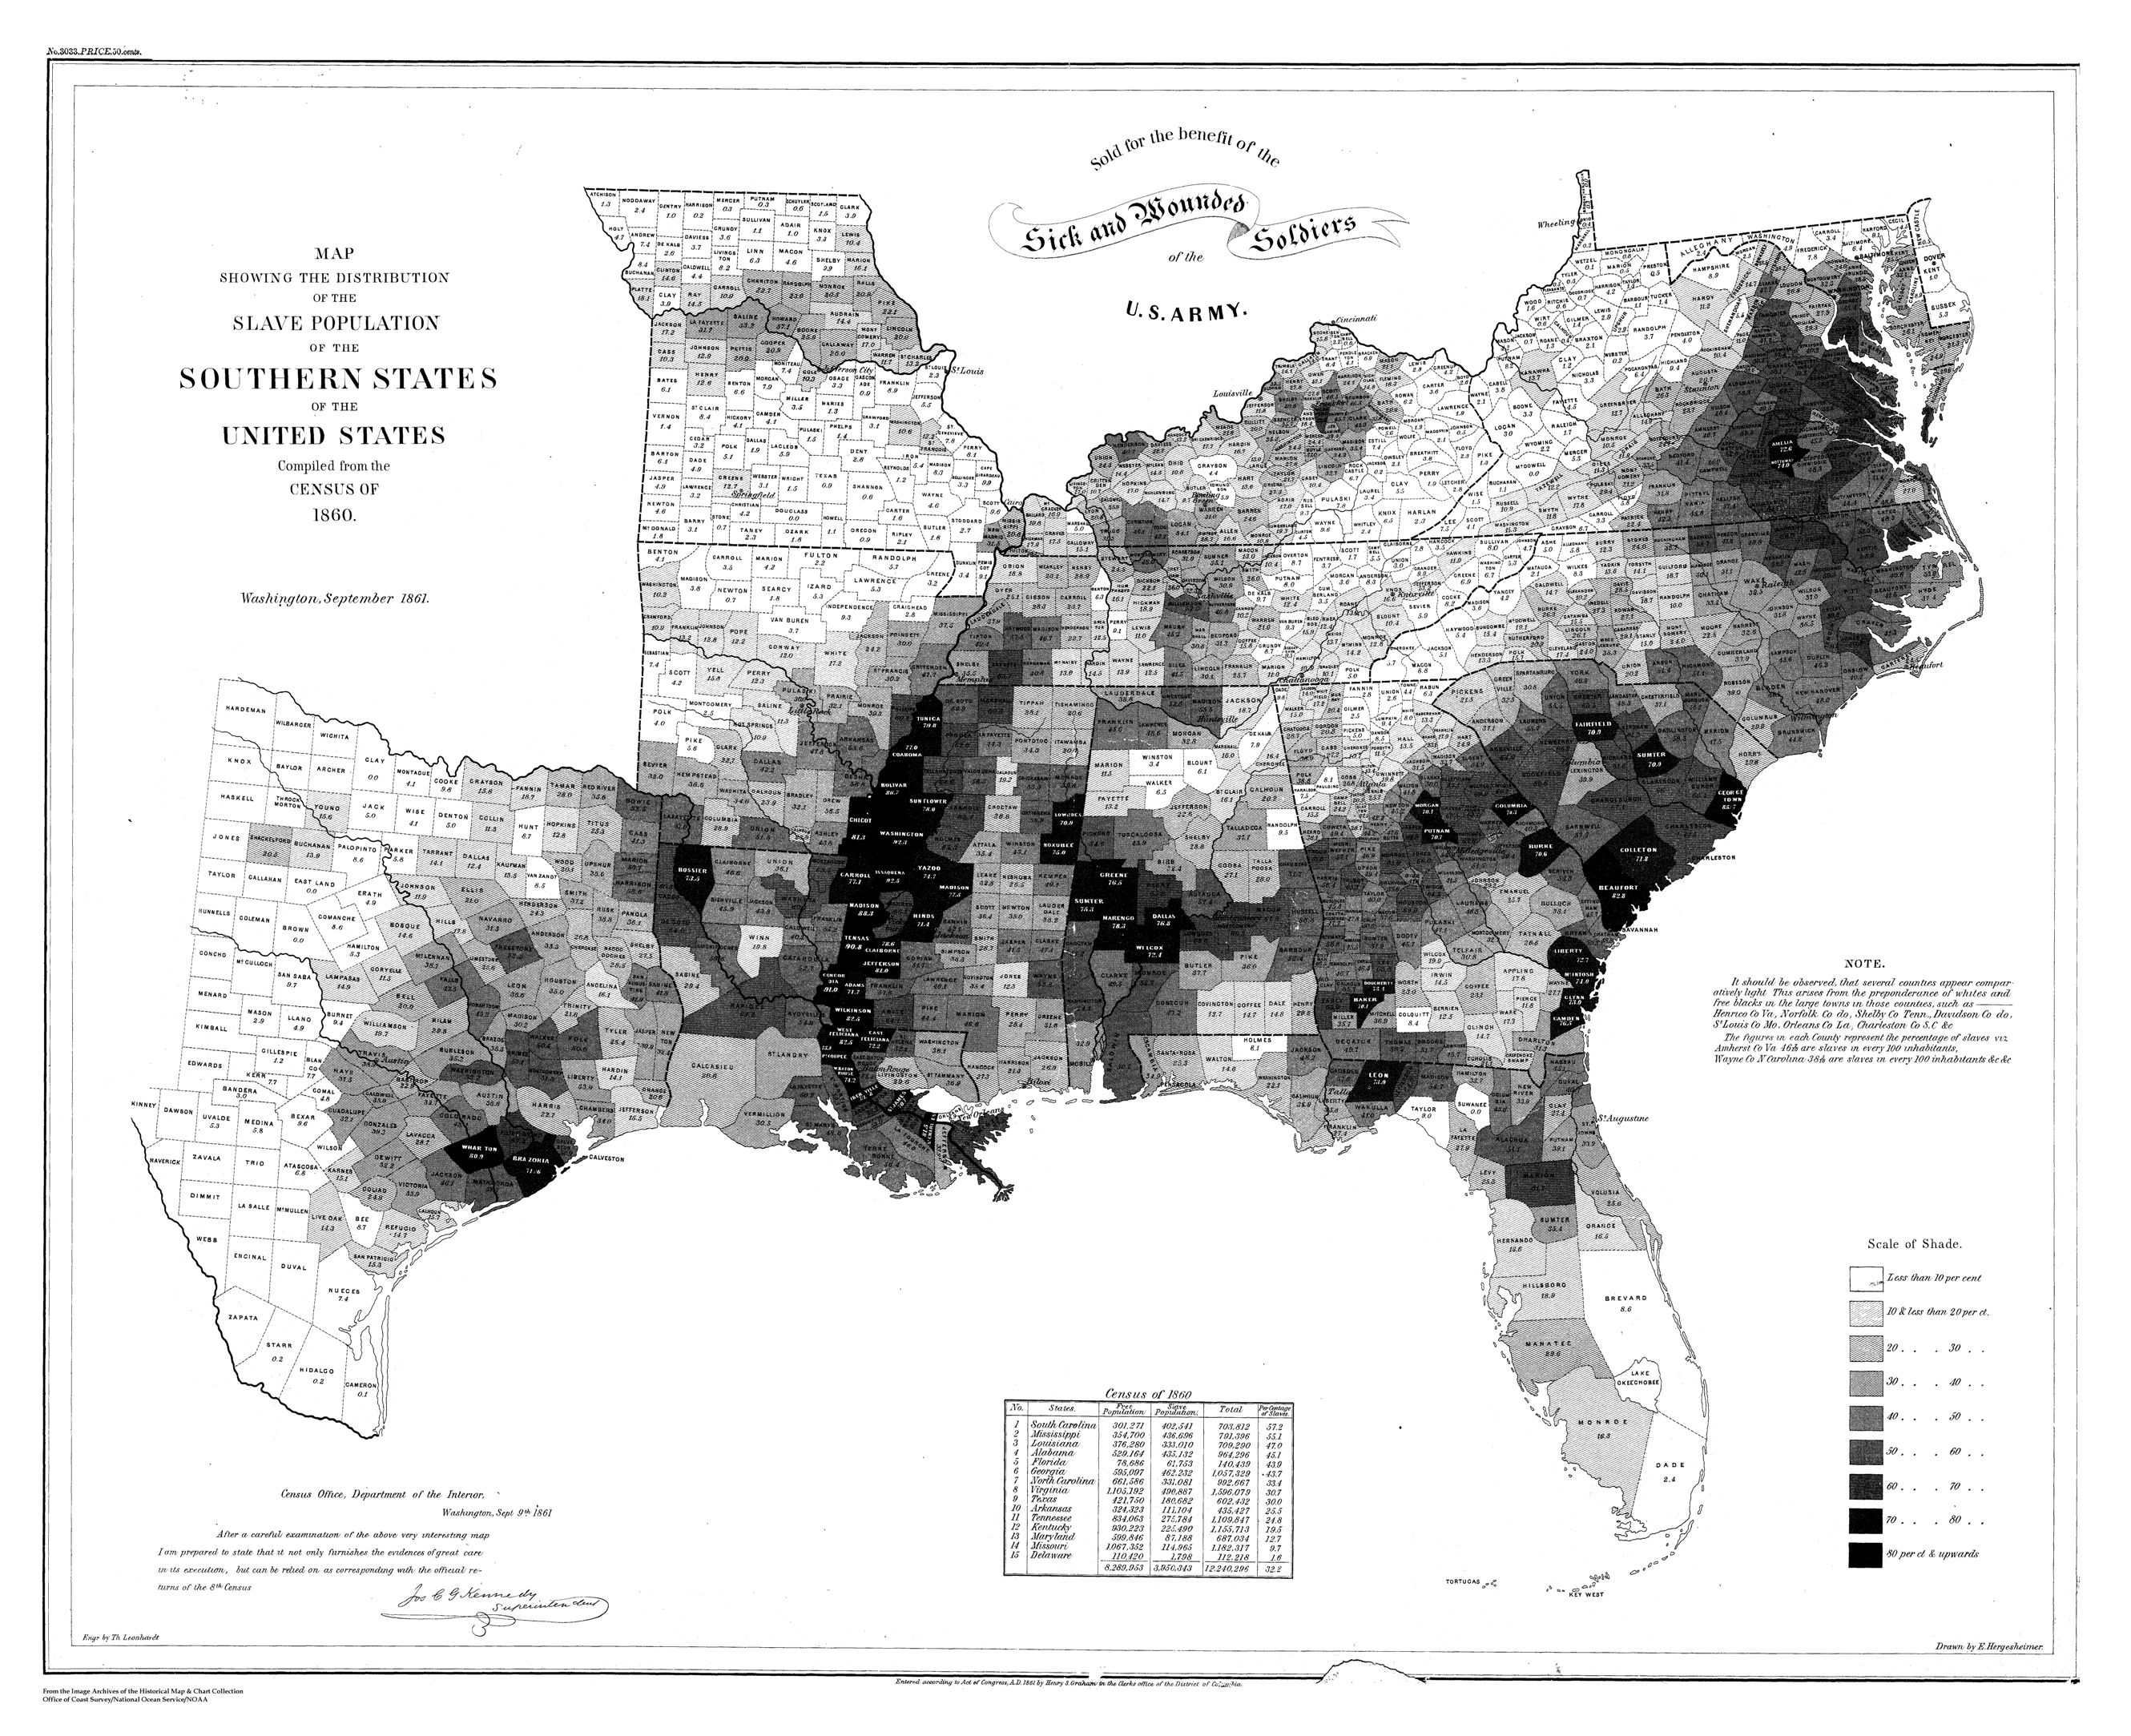 Noaa Civil War Collection Map Features Mapmaking